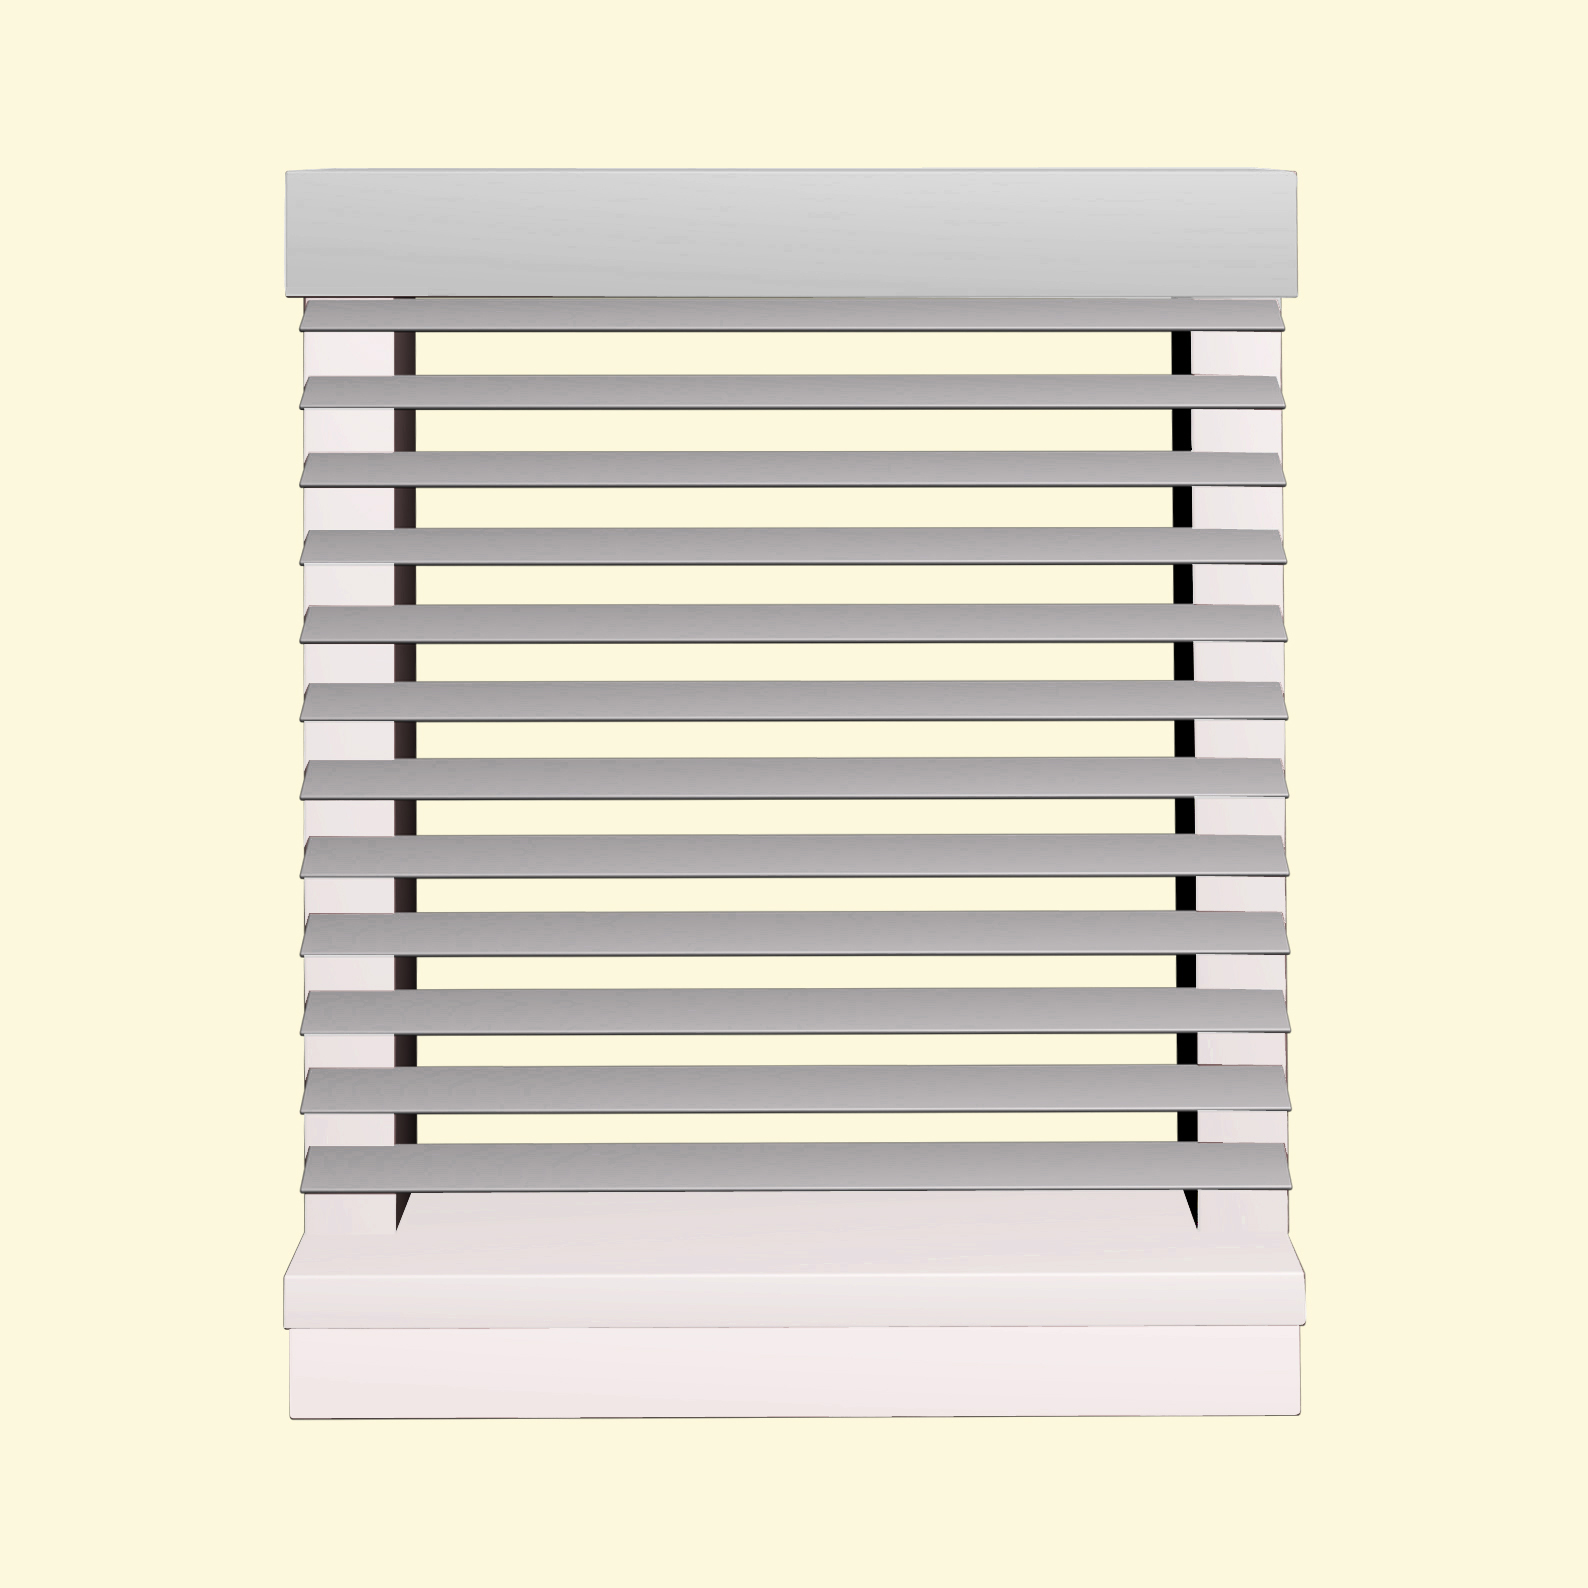 Hang Blinds Outside Window Frame: How To Measure